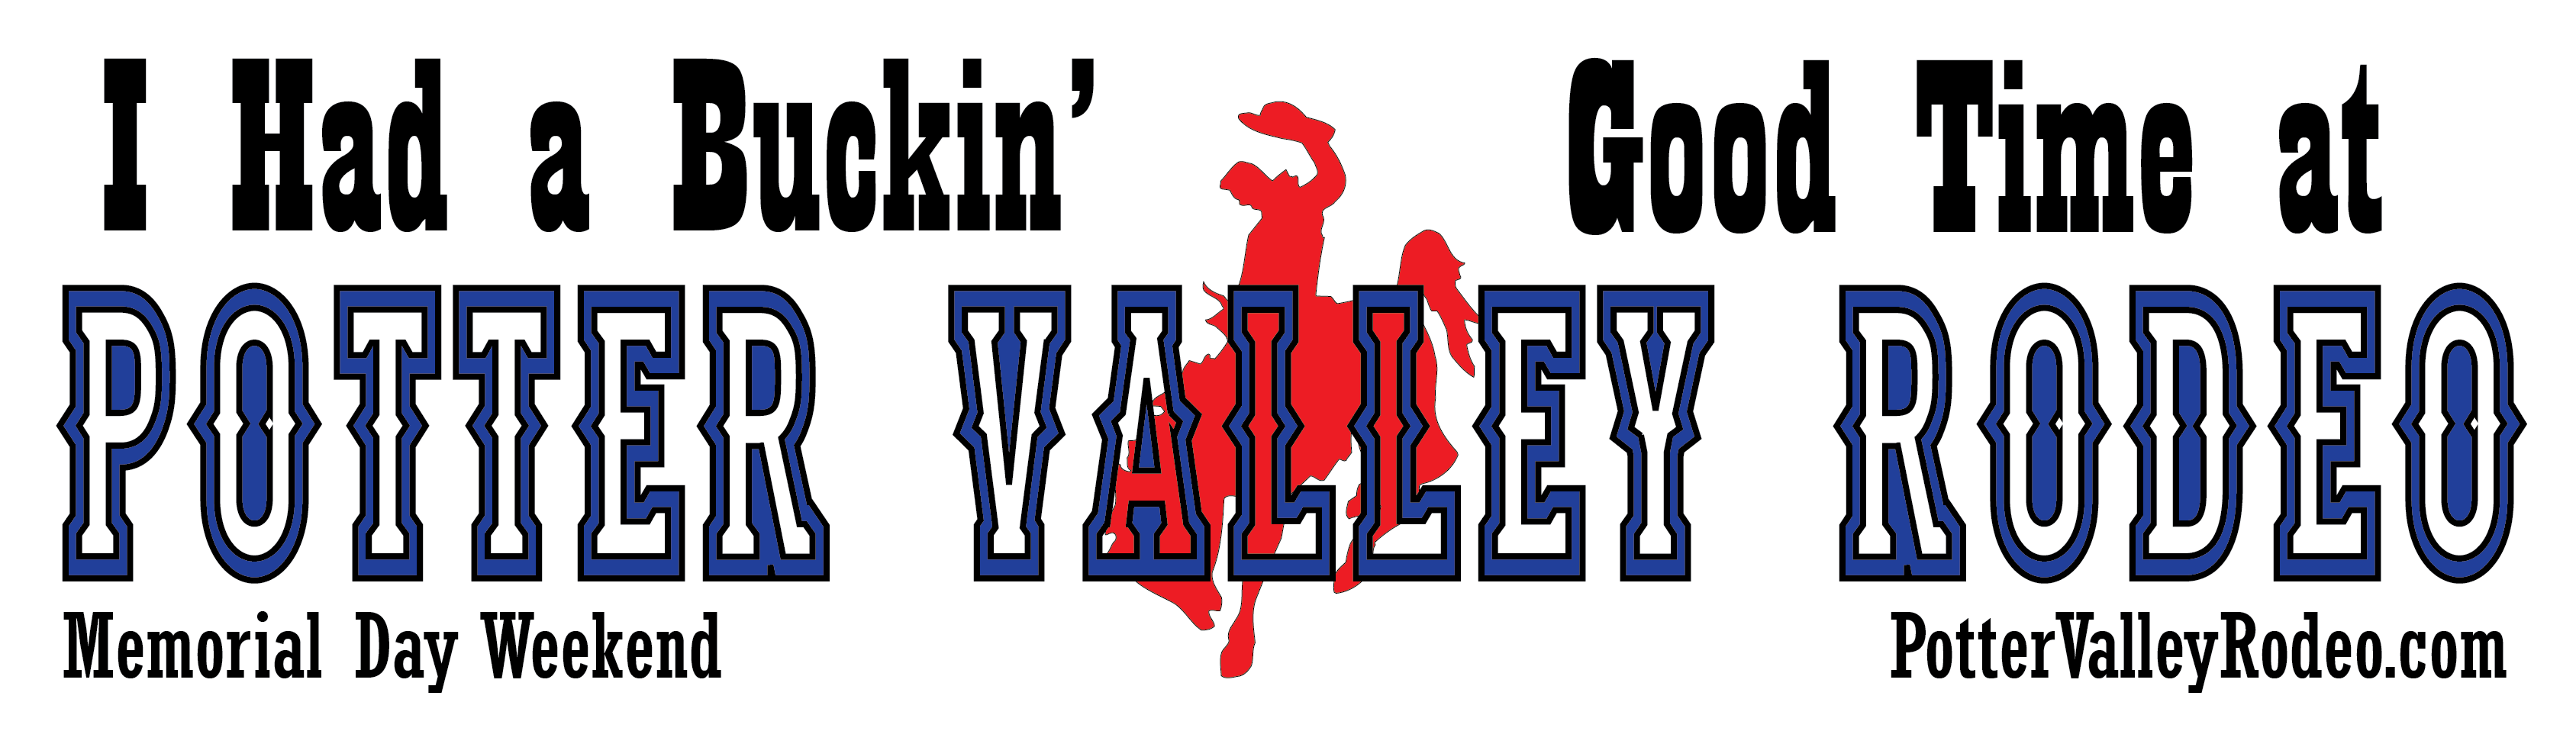 Free Potter Valley Rodeo Sticker